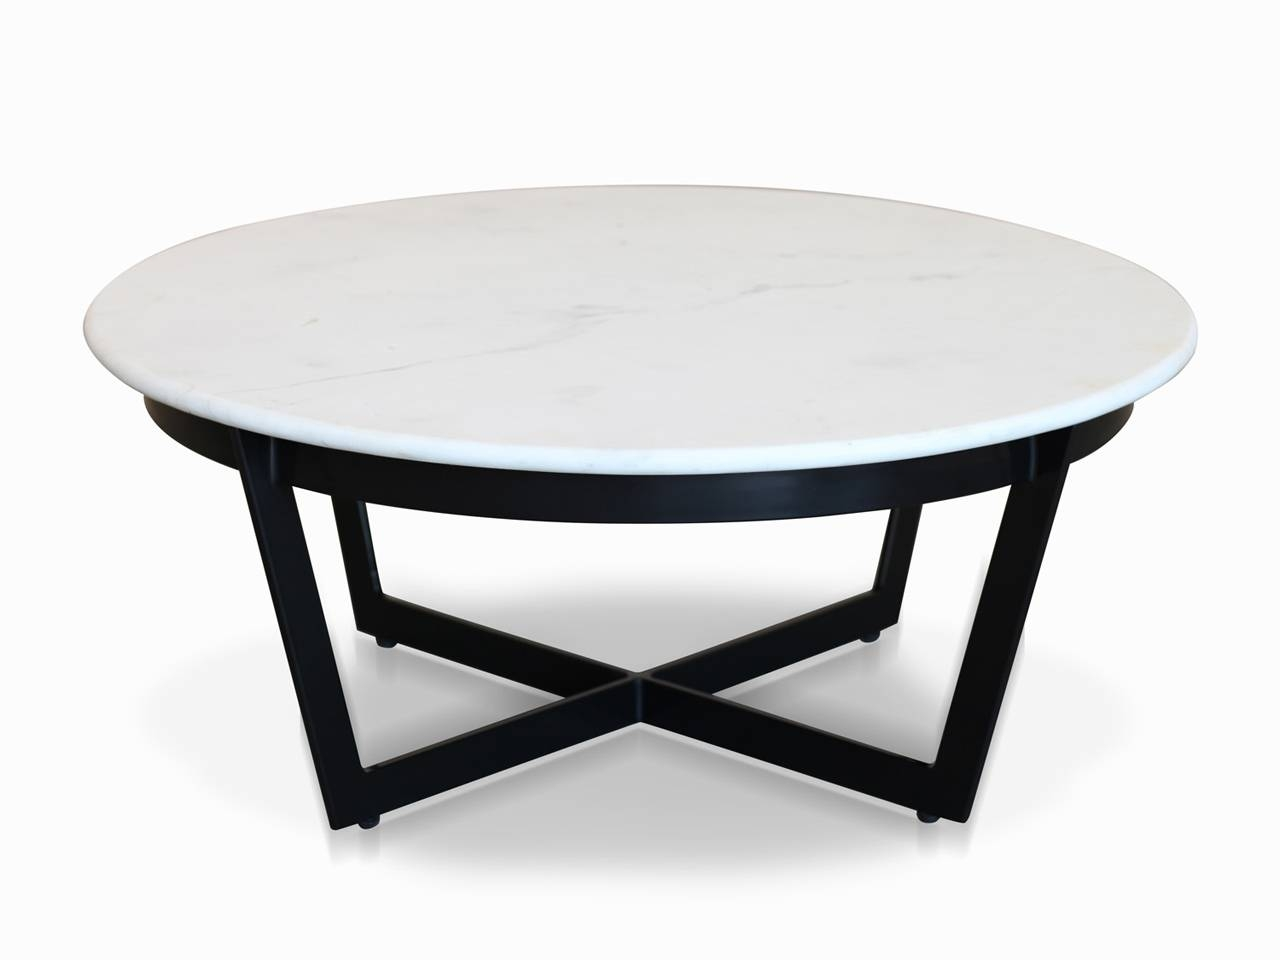 Coffee Table: Surprising Round Marble Coffee Table Designs White intended for White Marble Coffee Tables (Image 10 of 30)